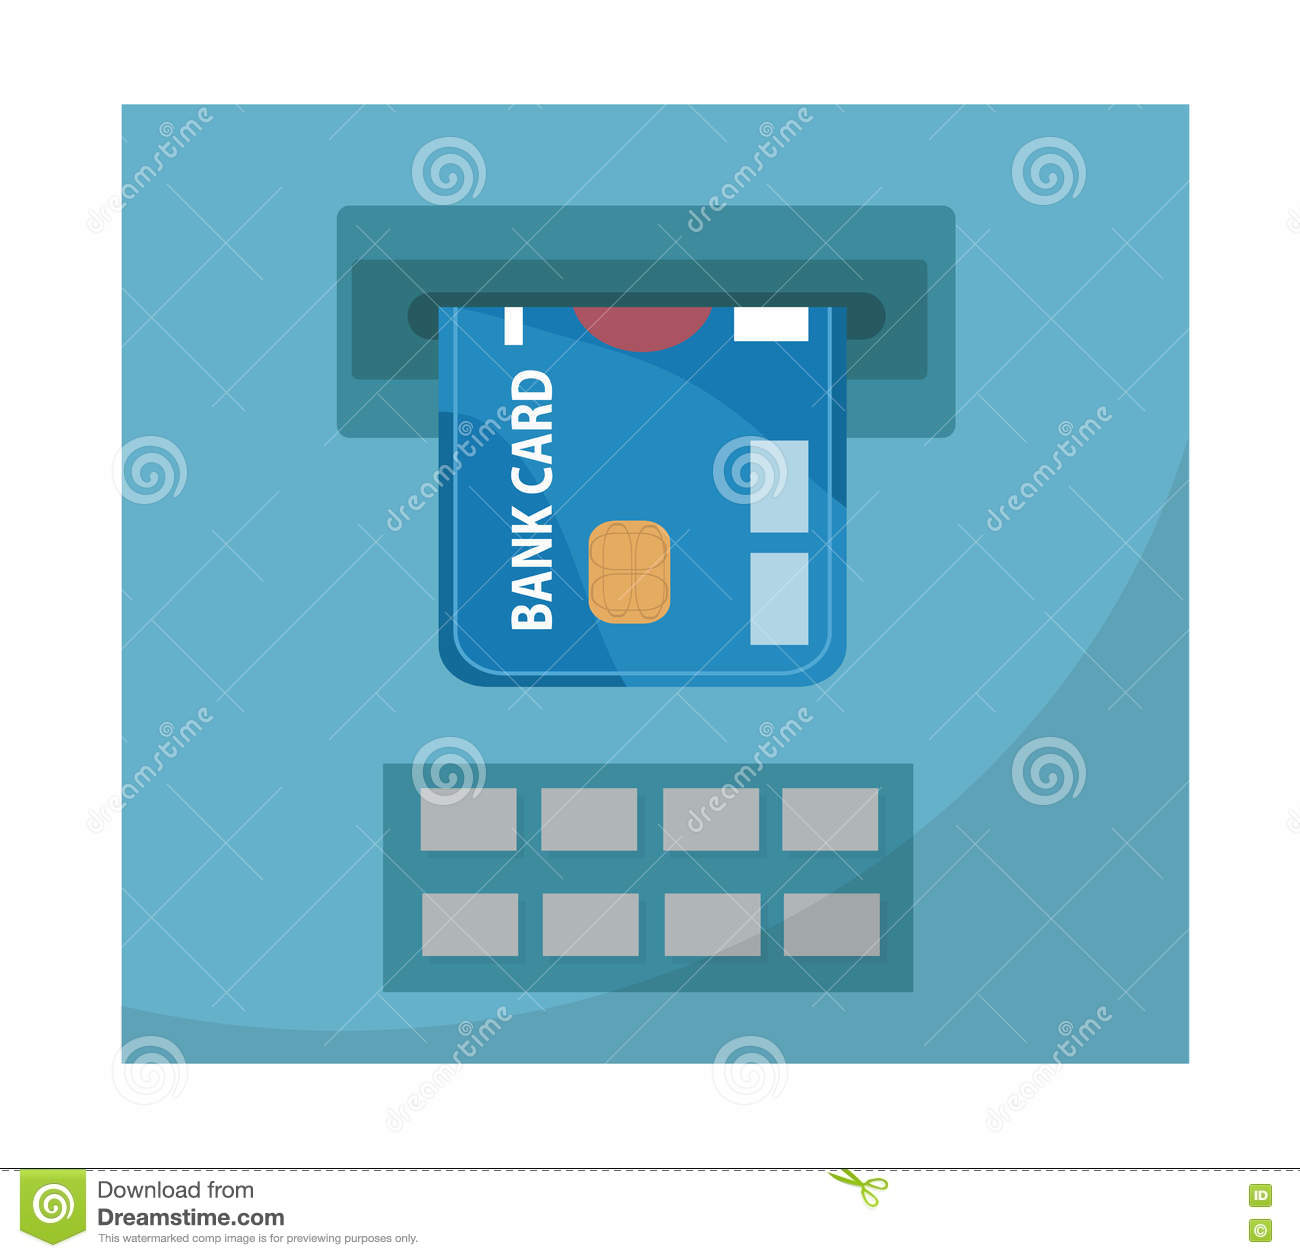 ATM With A Bank Card Icon, Flat Design, Isolated On White.